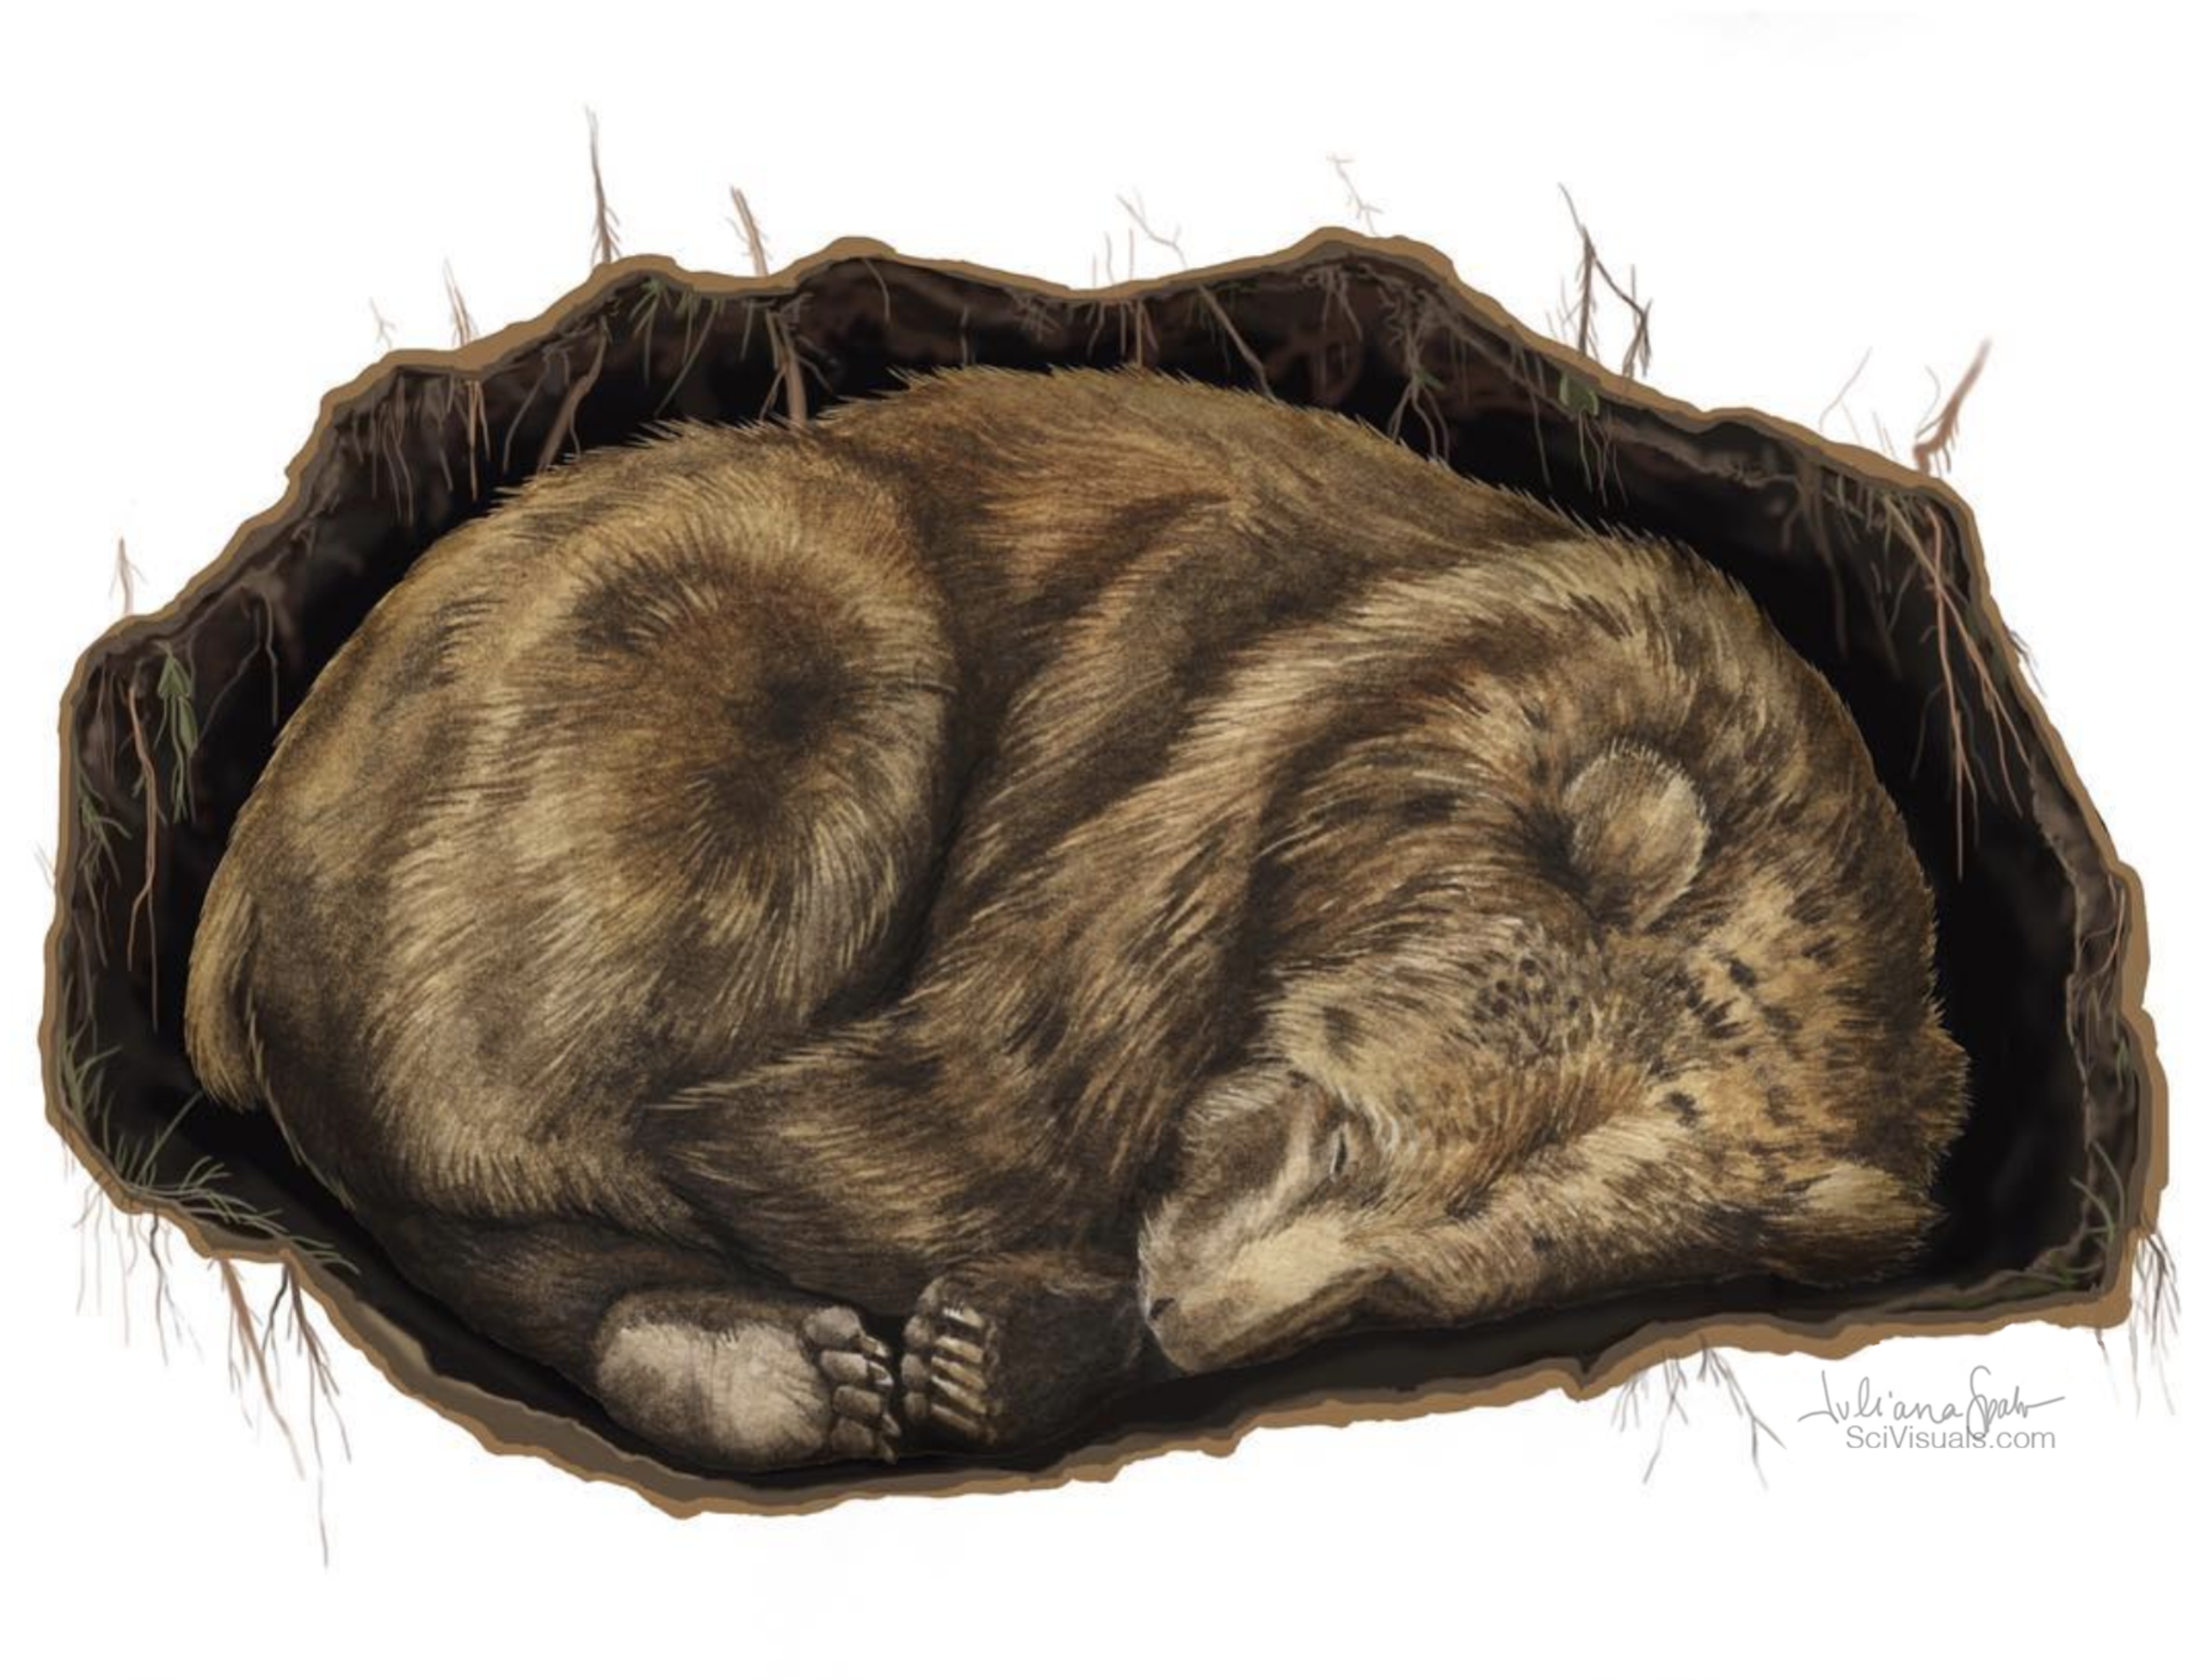 Ursus arctos in Hibernation